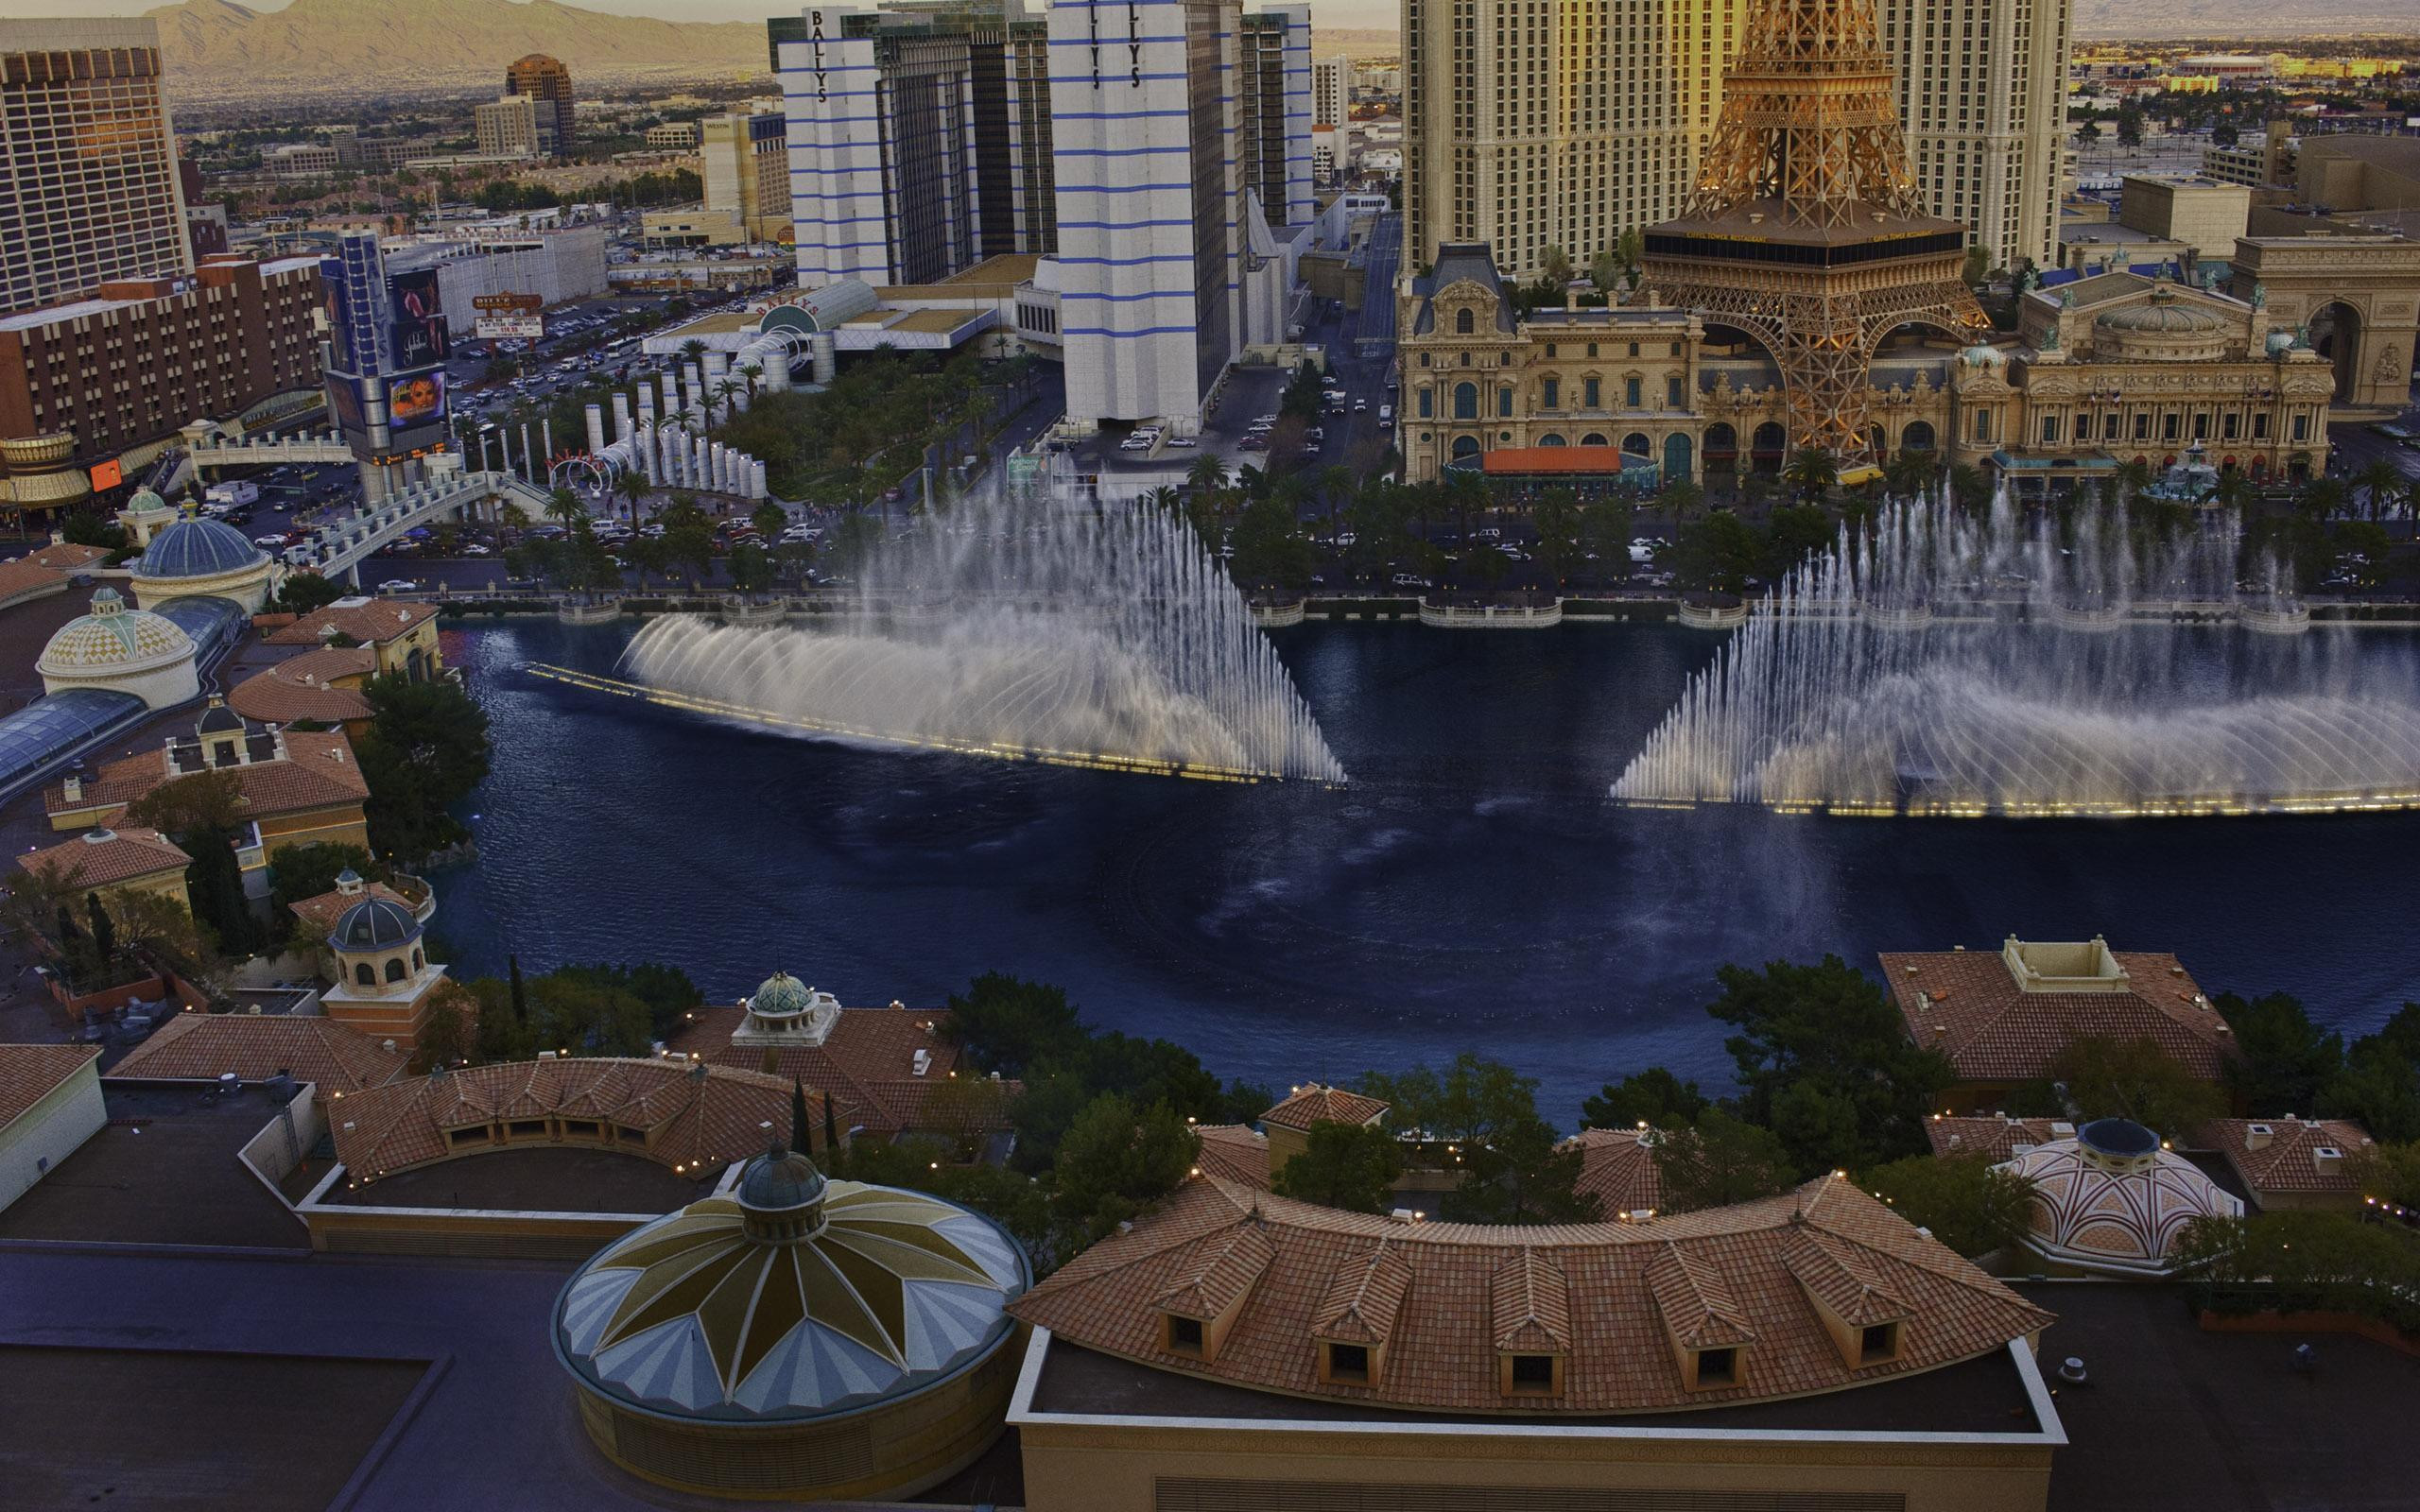 Las Vegas Strip Hd Wallpaper Bellagio Fountain Las Vegas Hd Desktop Wallpaper